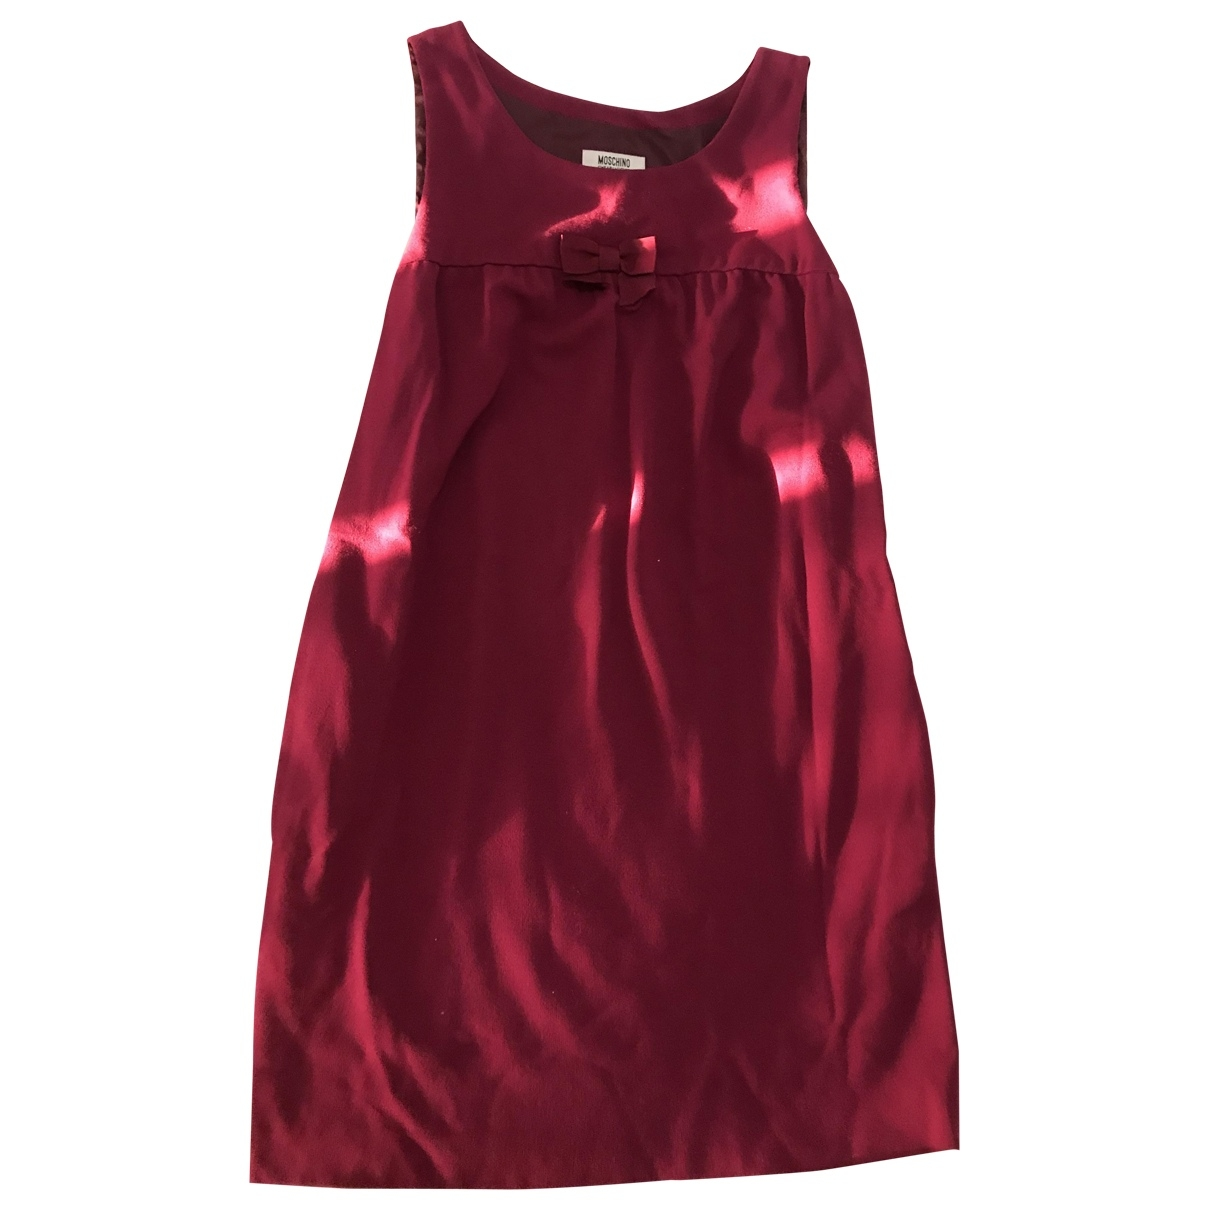 Moschino Cheap And Chic \N dress for Women 38 IT